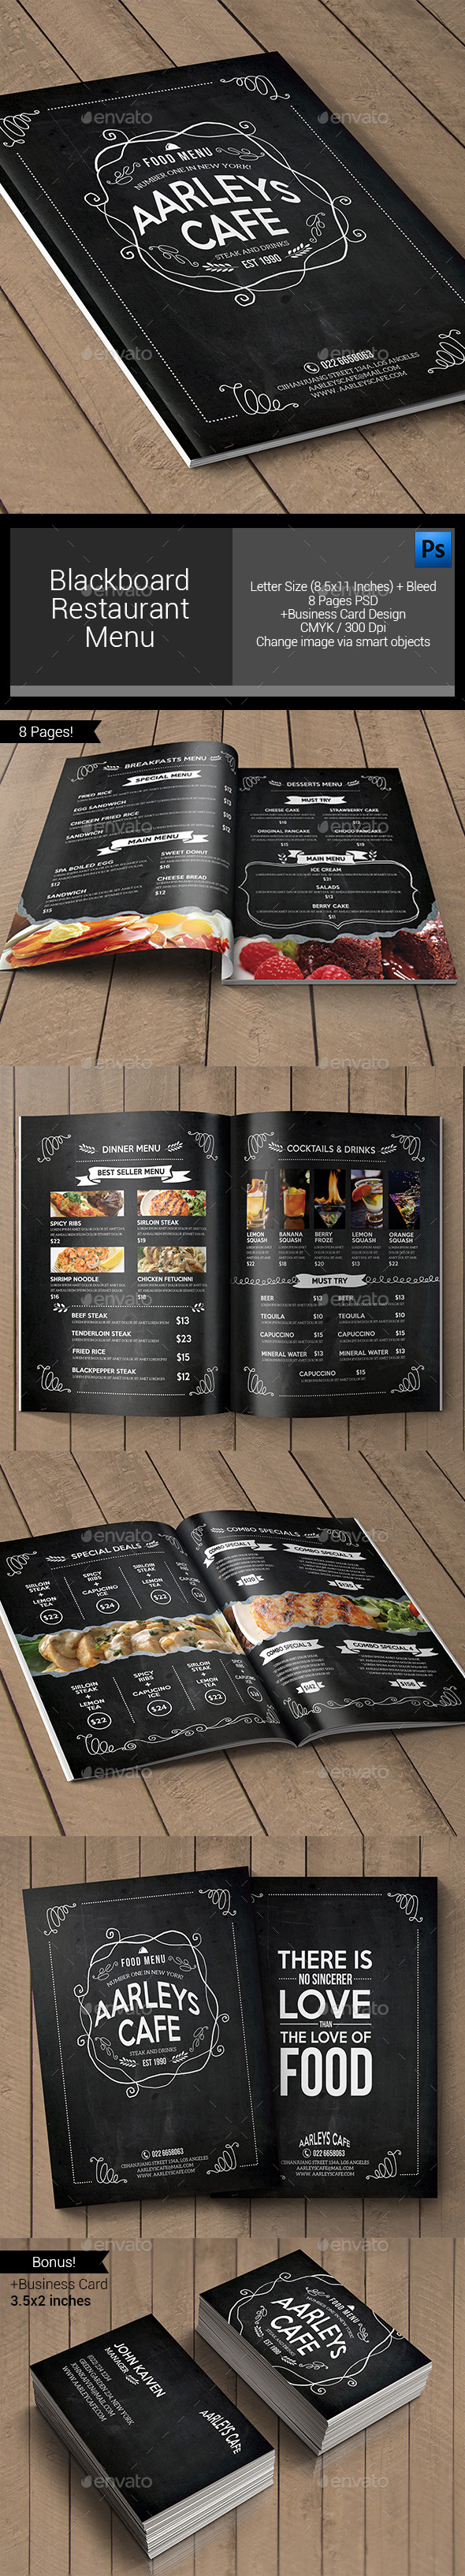 Blackboard Restaurant Menu - Food Menus Print Templates